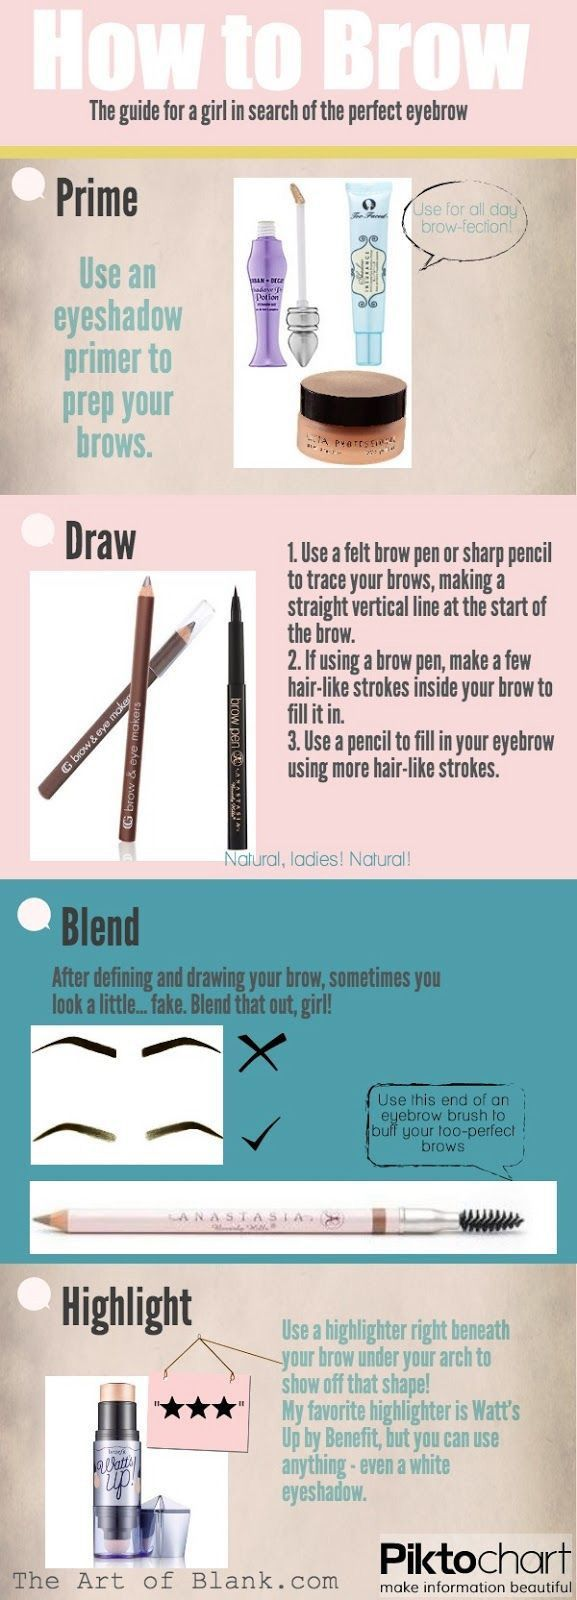 how to make a cut in your eyebrow